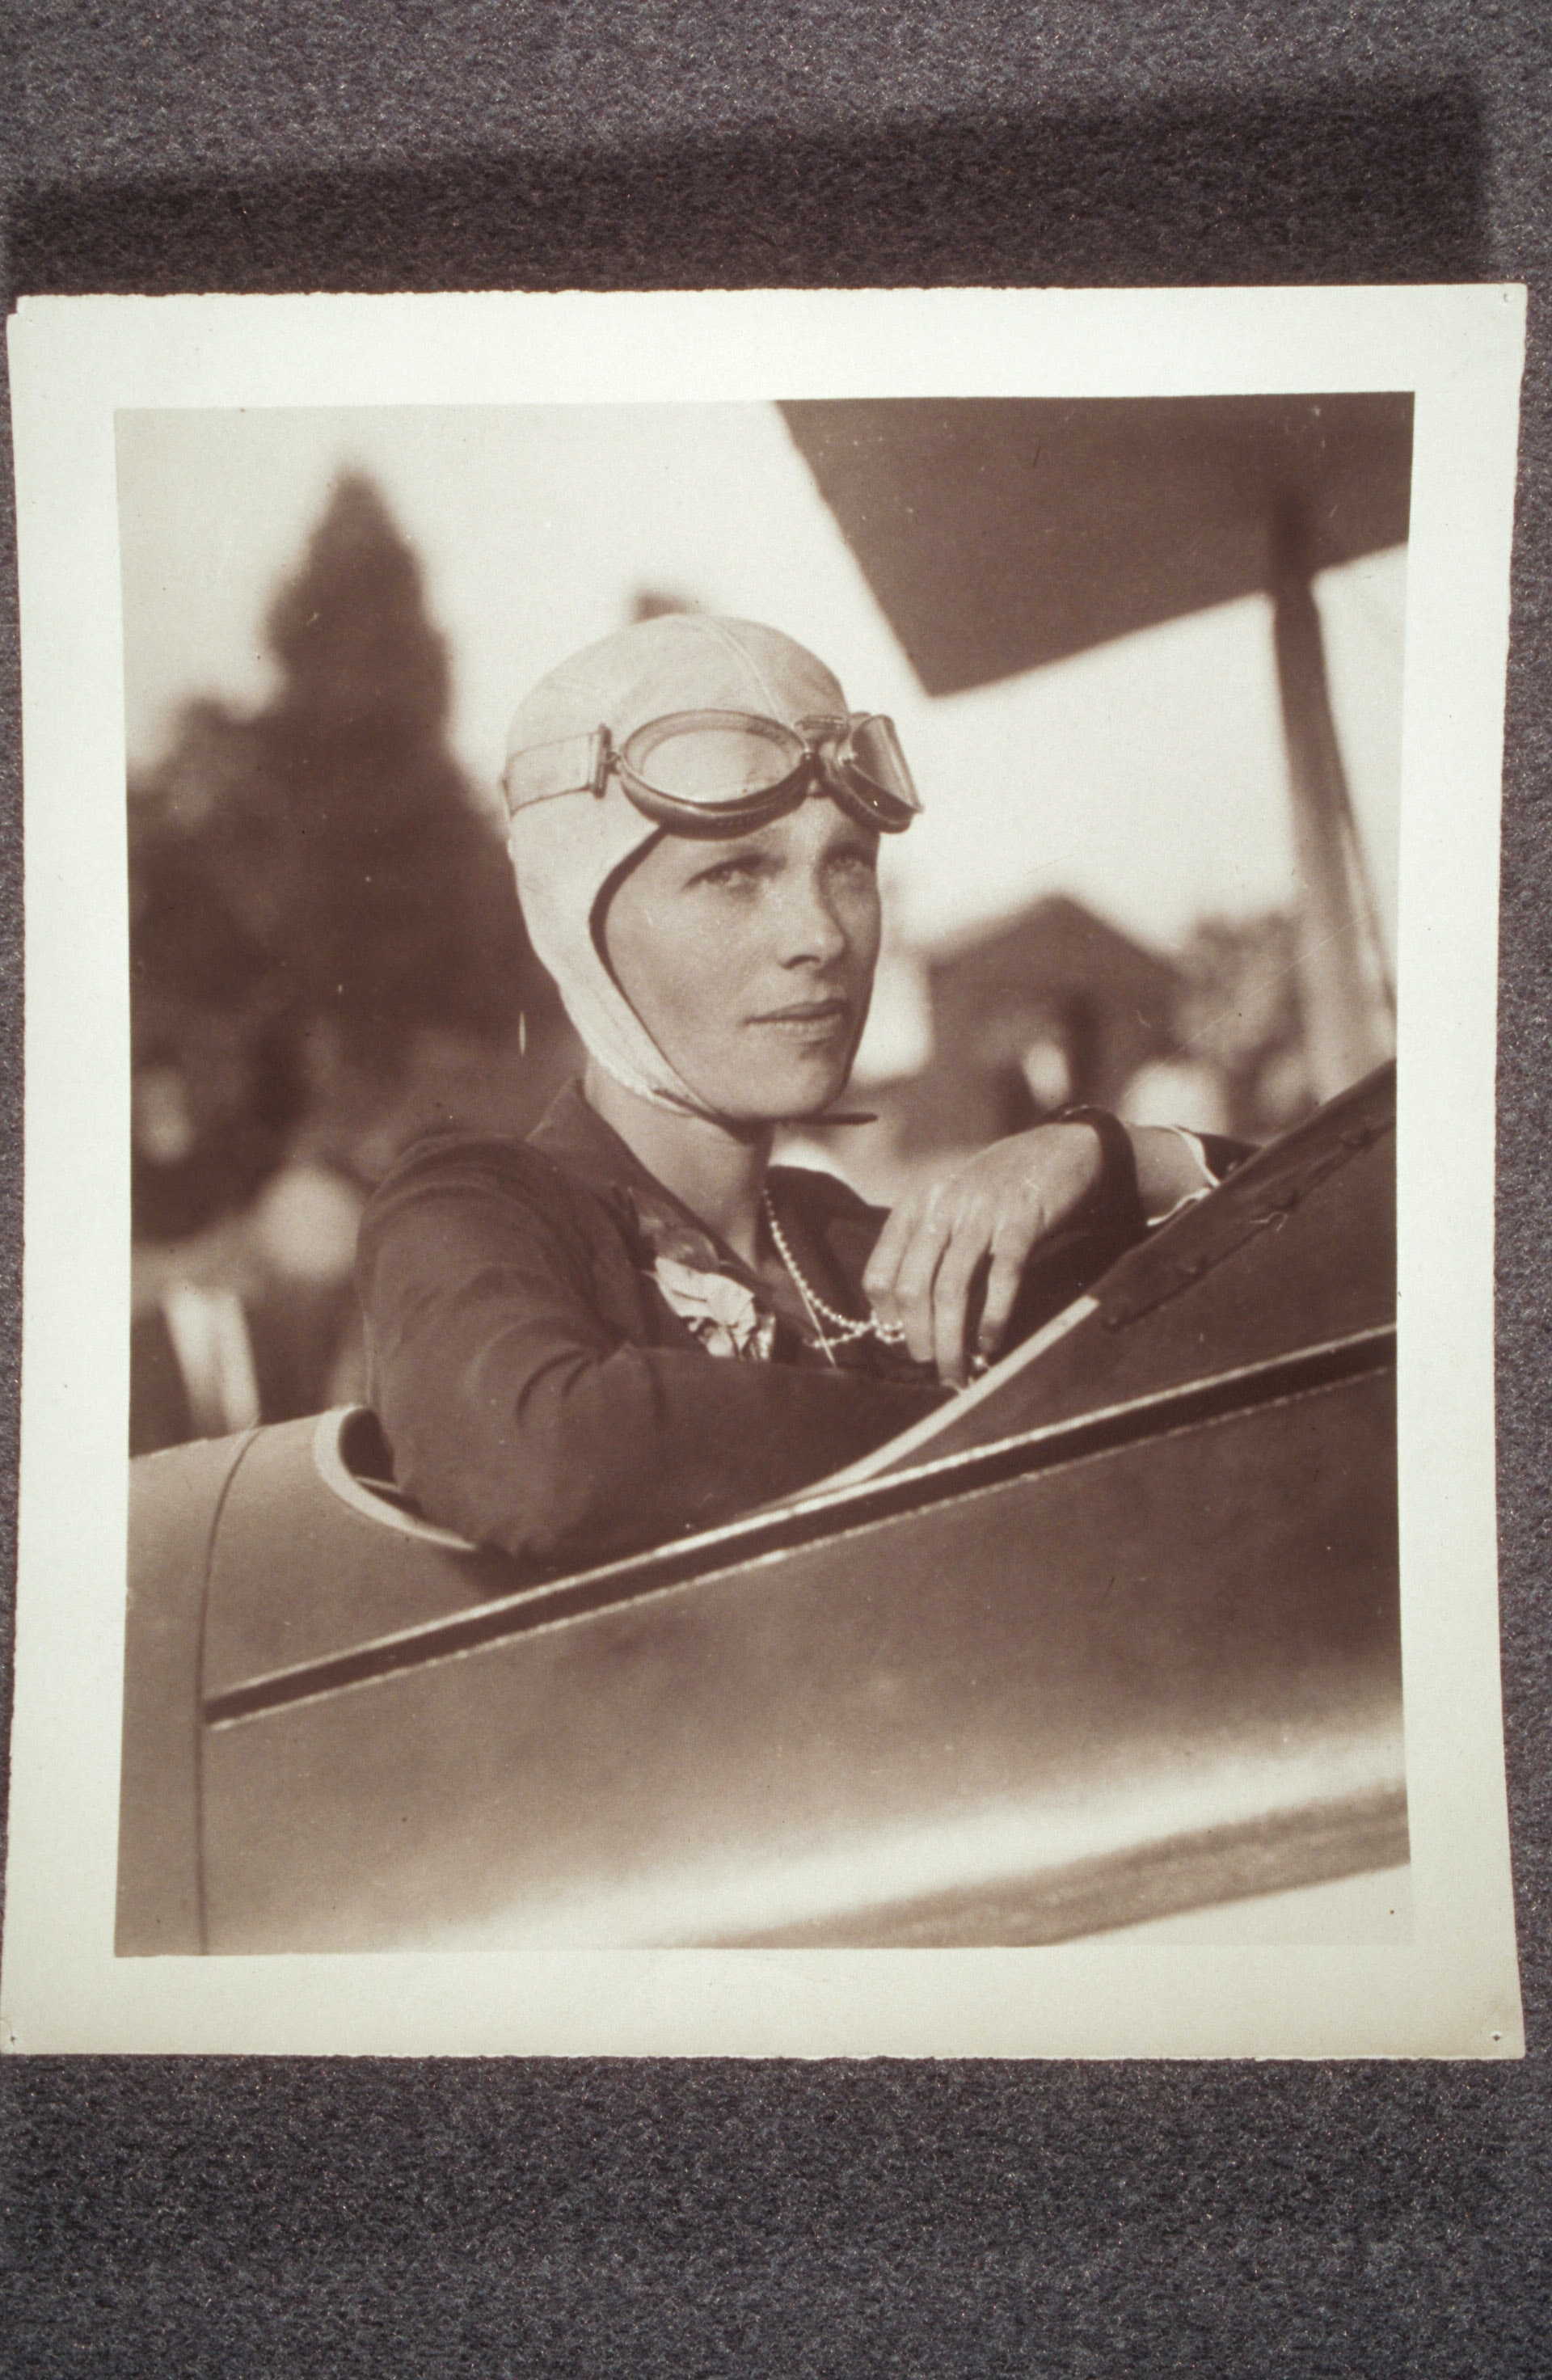 Amelia Earhart, in plane, wearing flight helmet and pearls